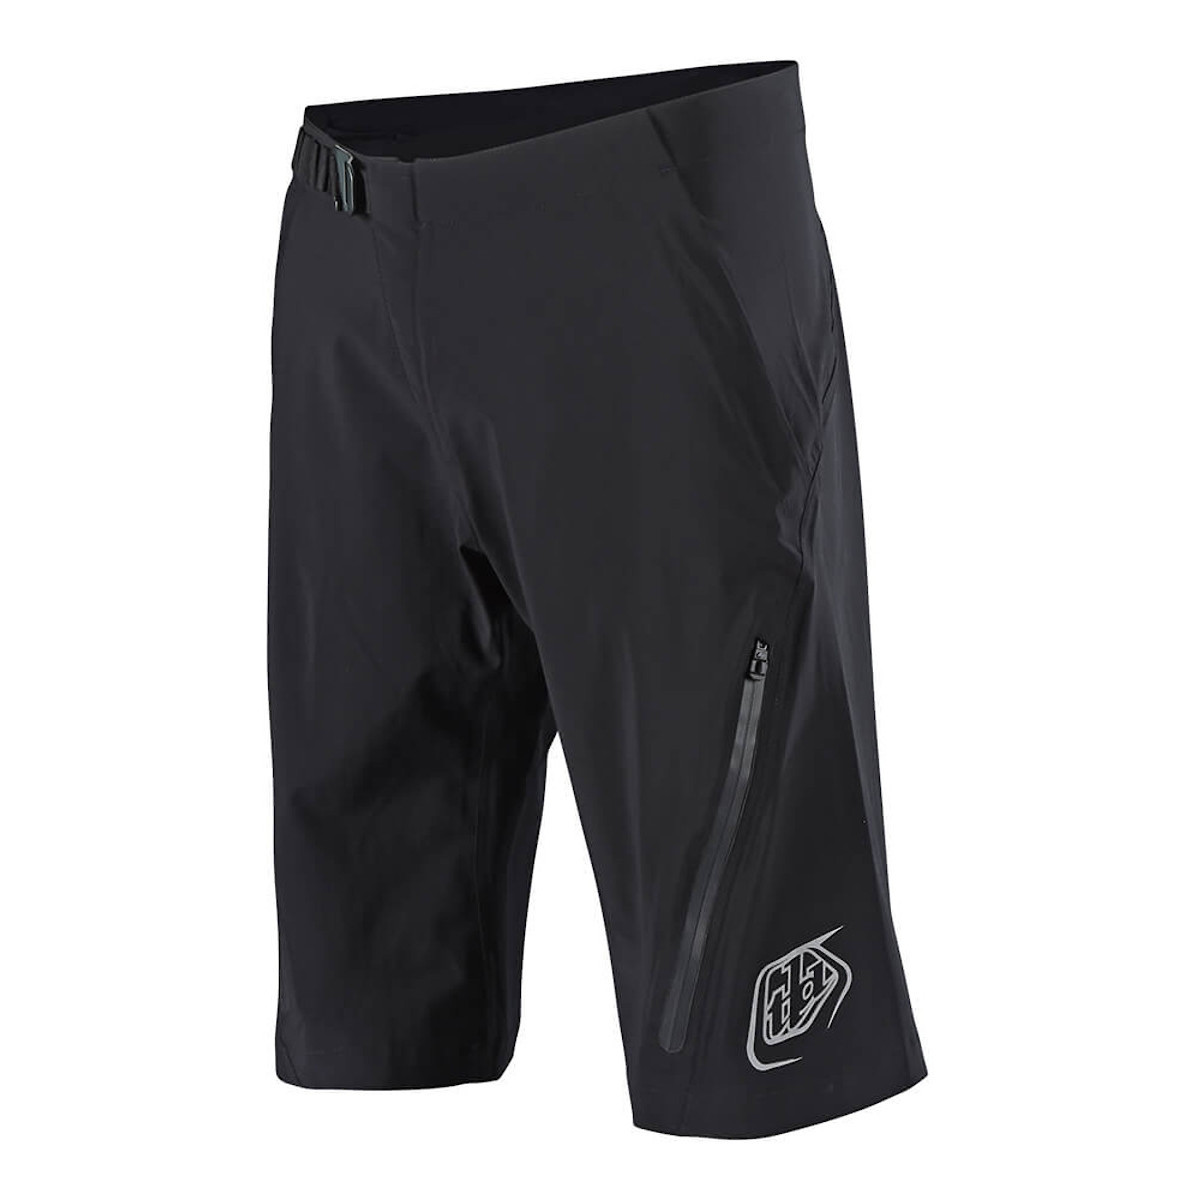 2018 TLD Resist Short Black